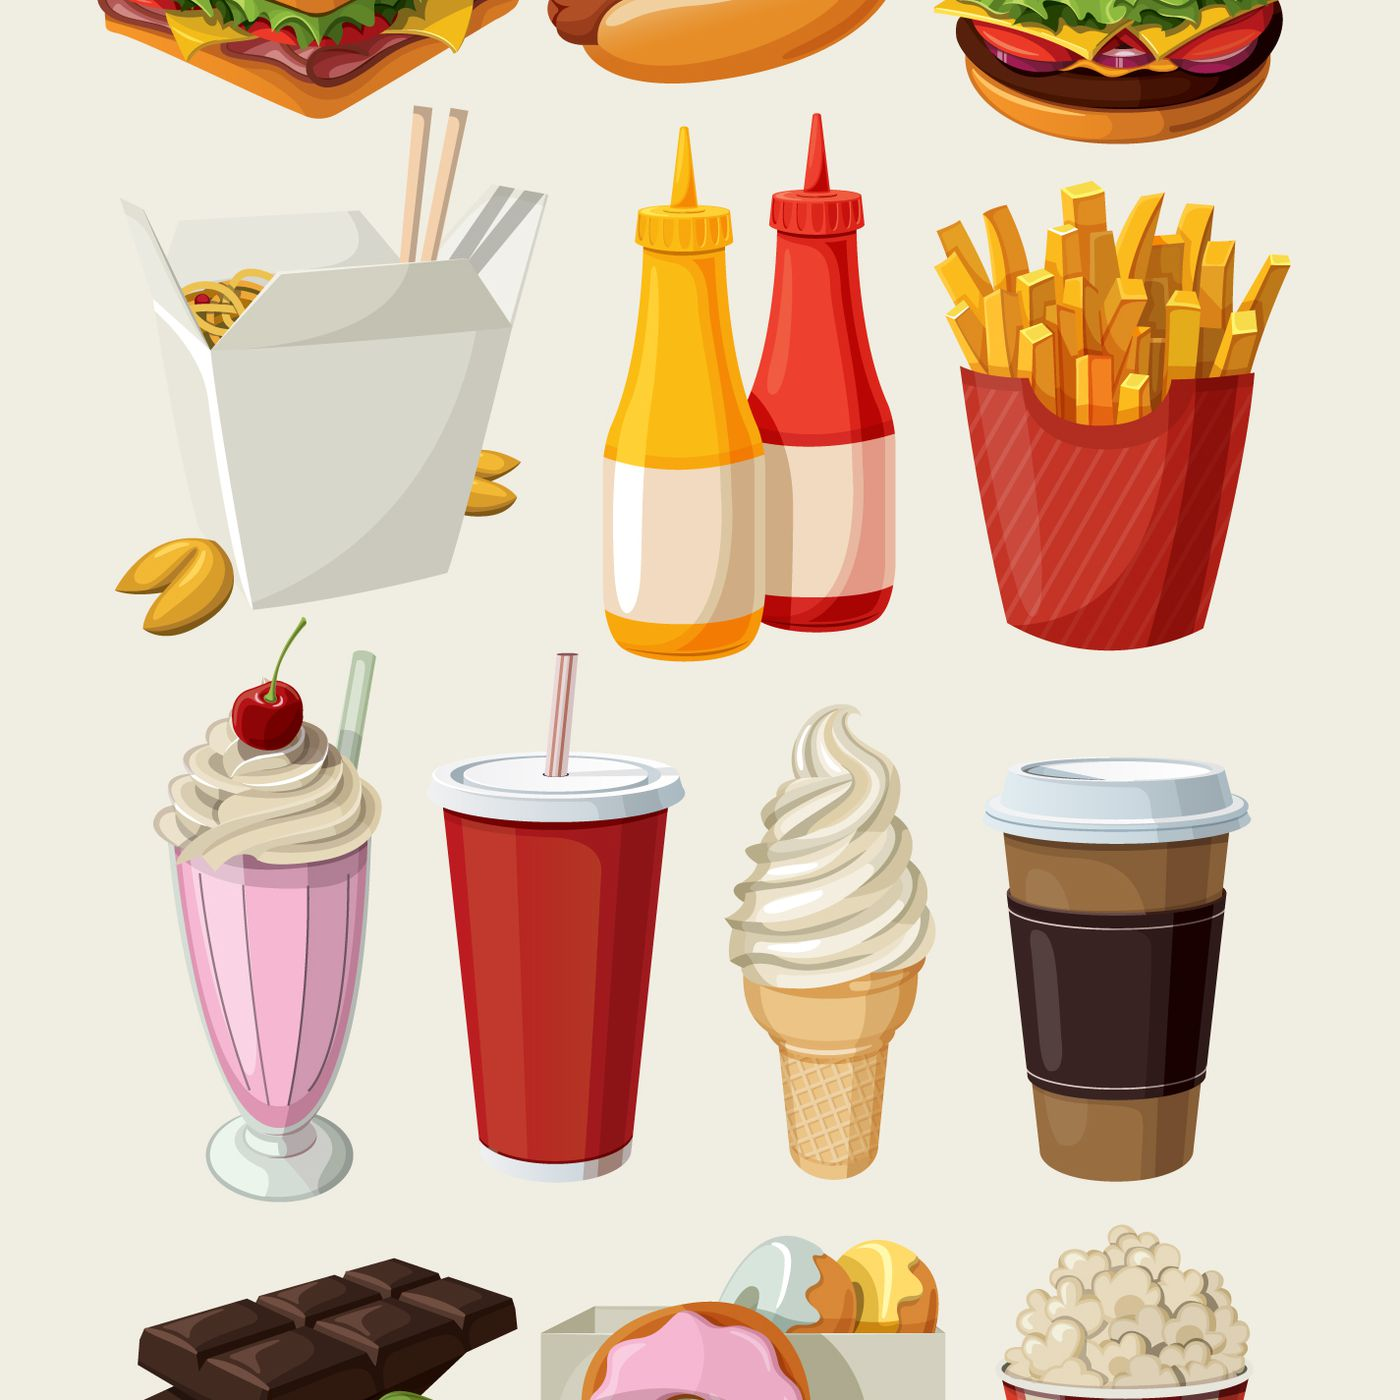 Purchase food in the market clipart image free download Mexico and Hungary tried junk food taxes — and they seem to ... image free download